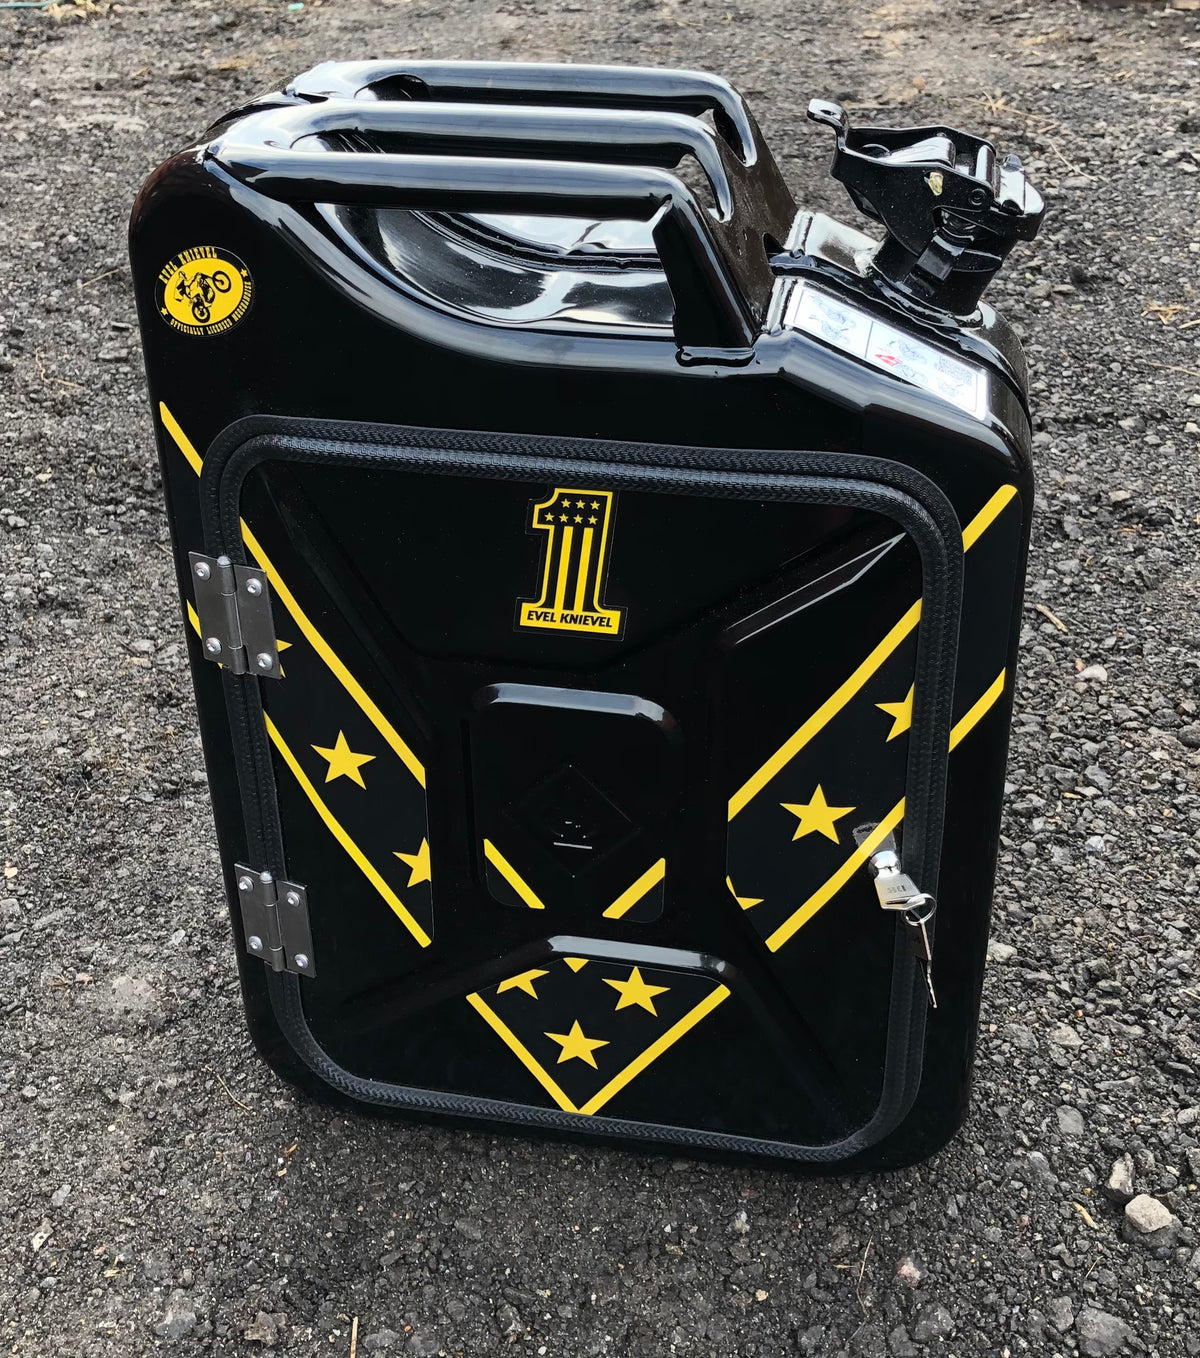 Limited edition yellow and black Evel Knievel Jerry can mini bar (licensed)